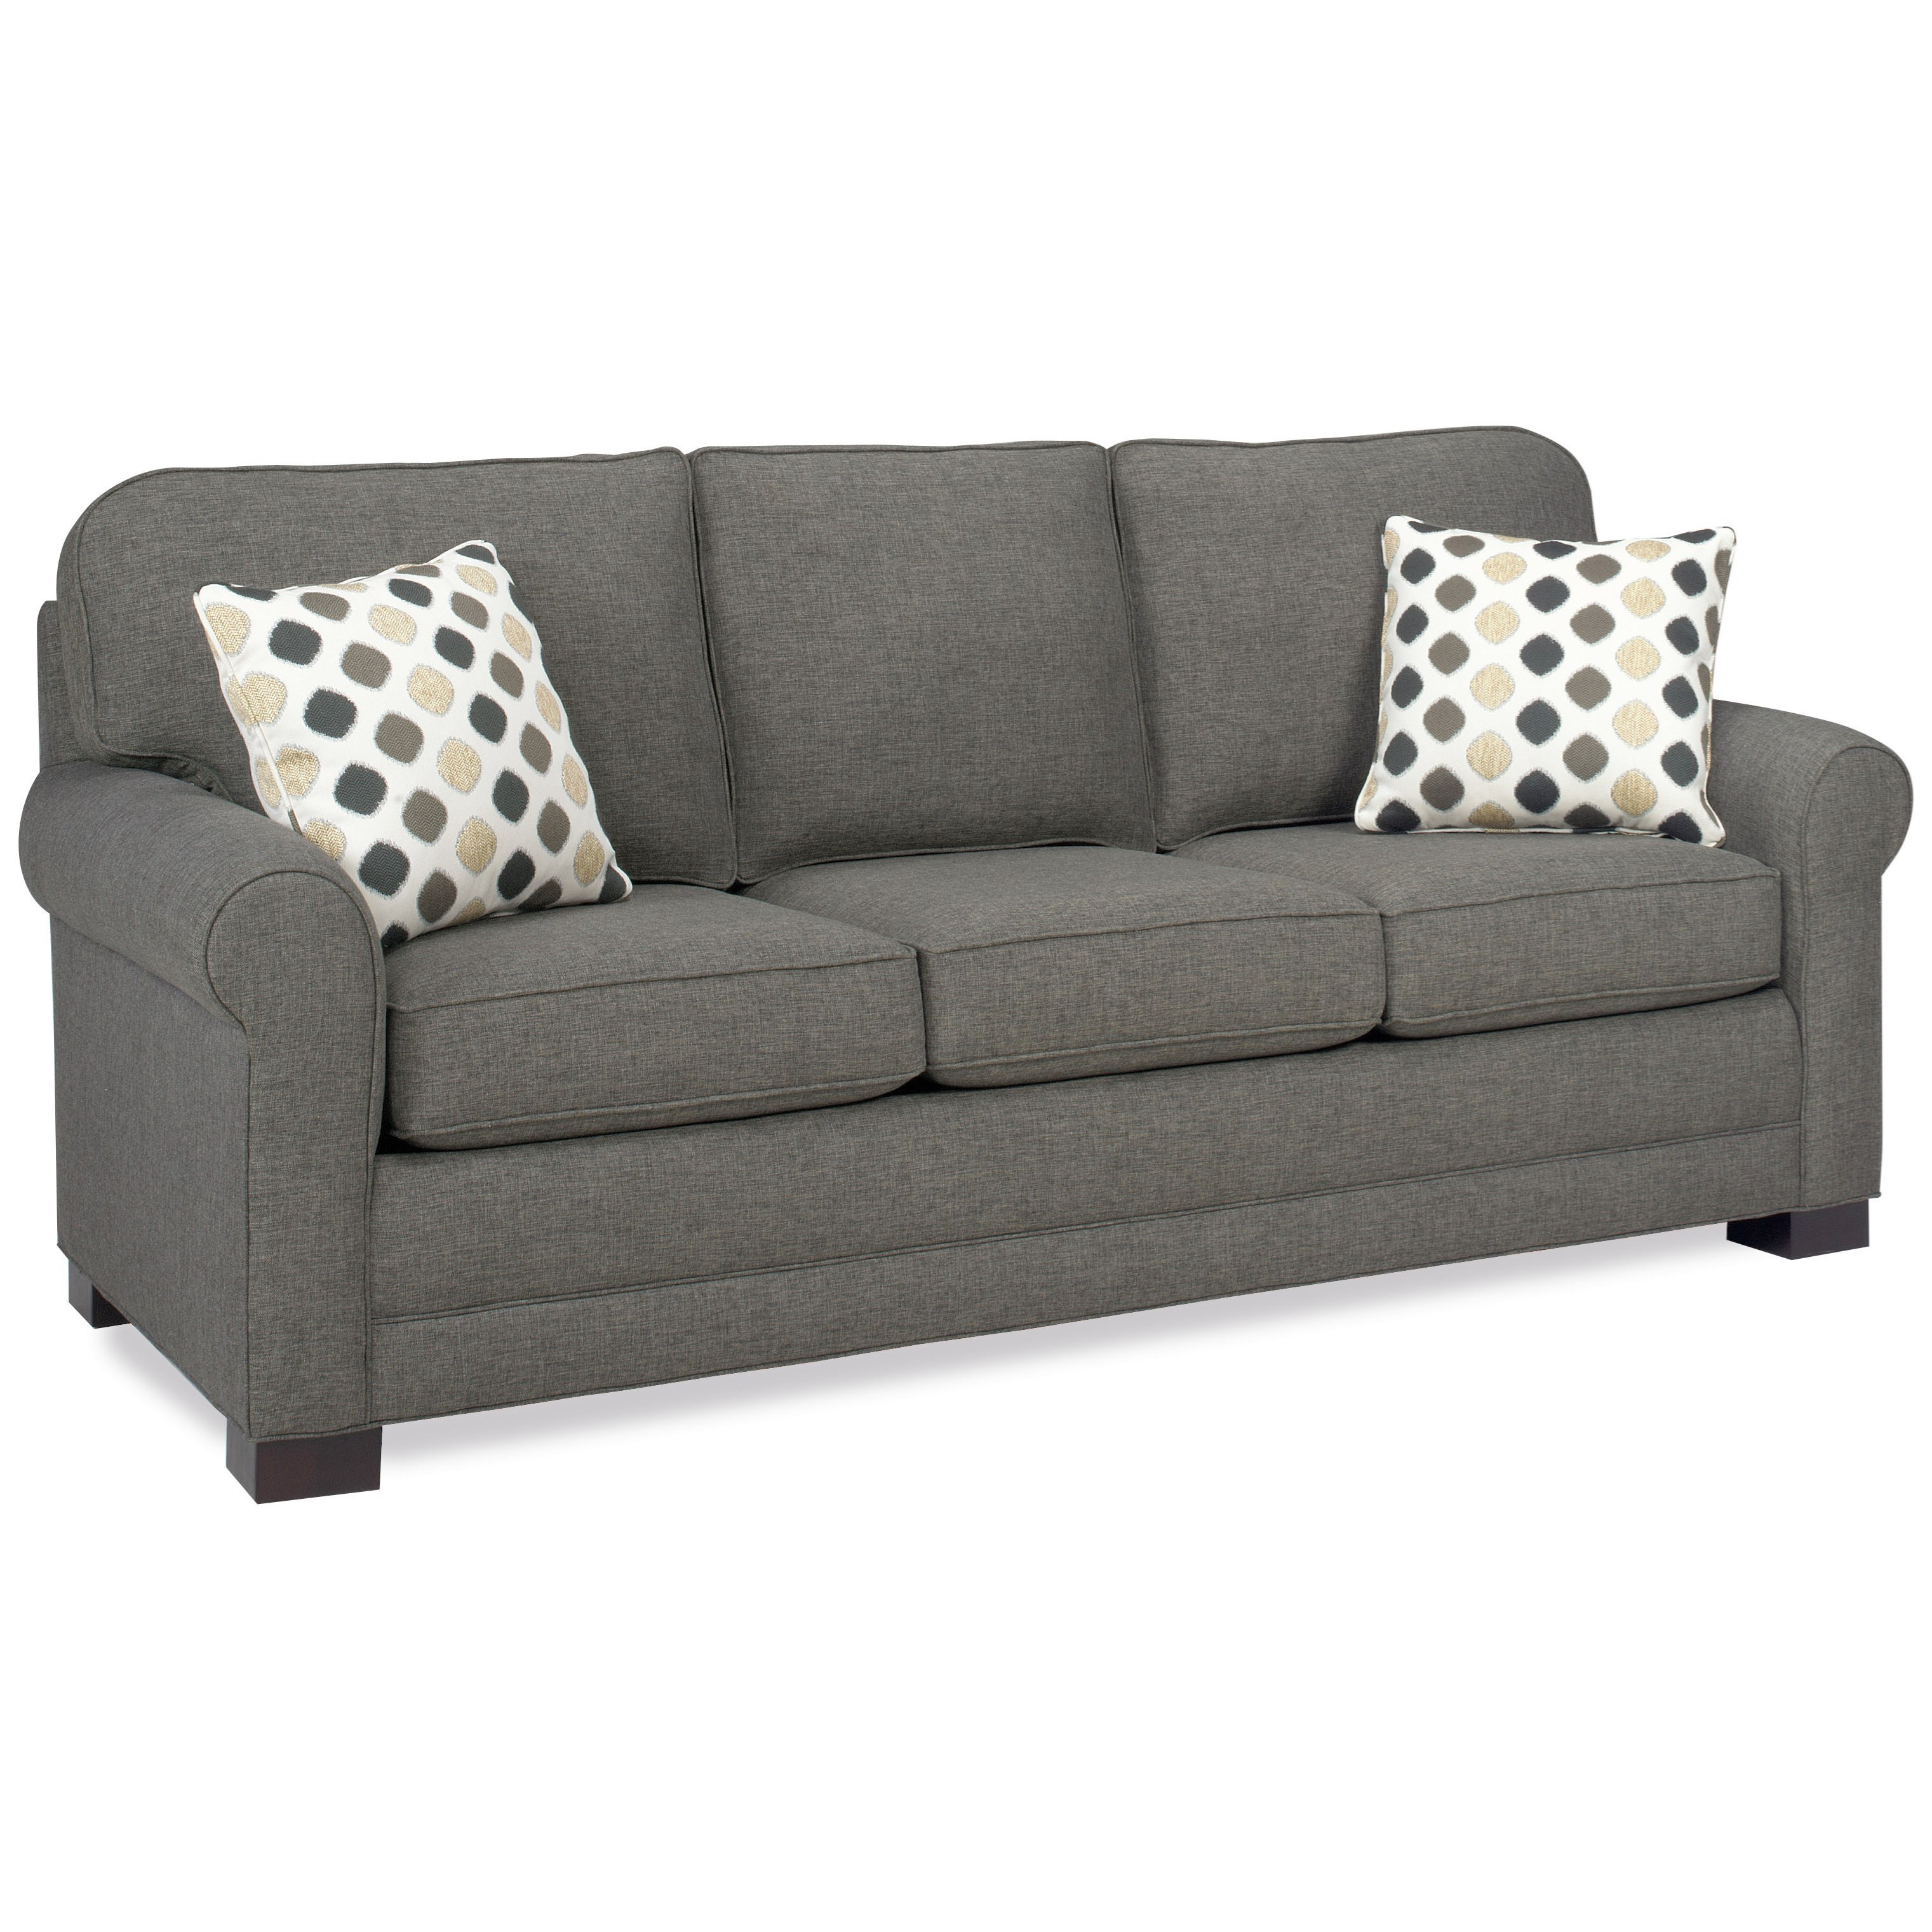 Tailor Made Queen Sofa Sleeper by Temple Furniture at Mueller Furniture